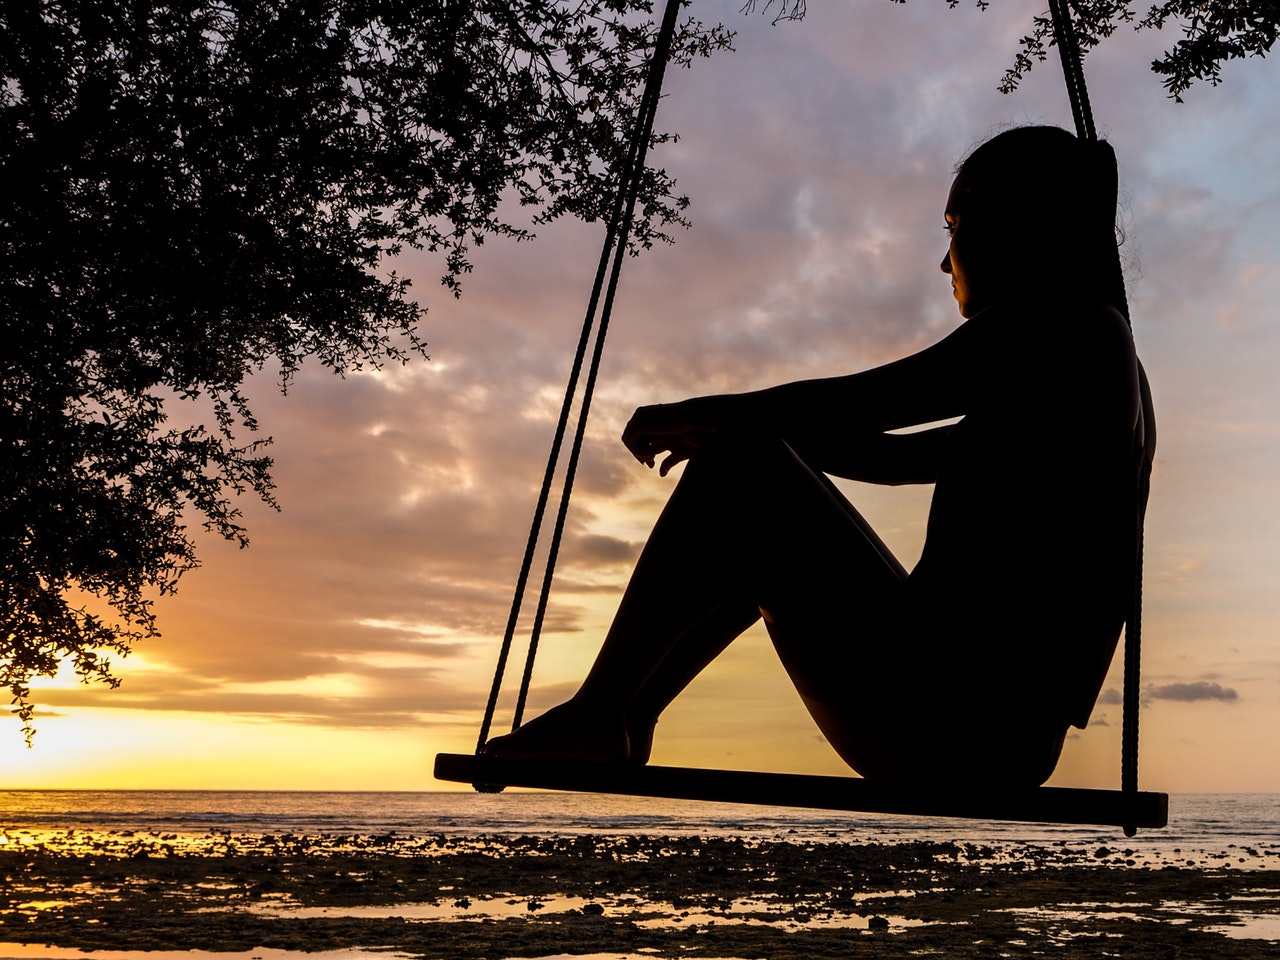 A woman sits on a swing watching a sunset